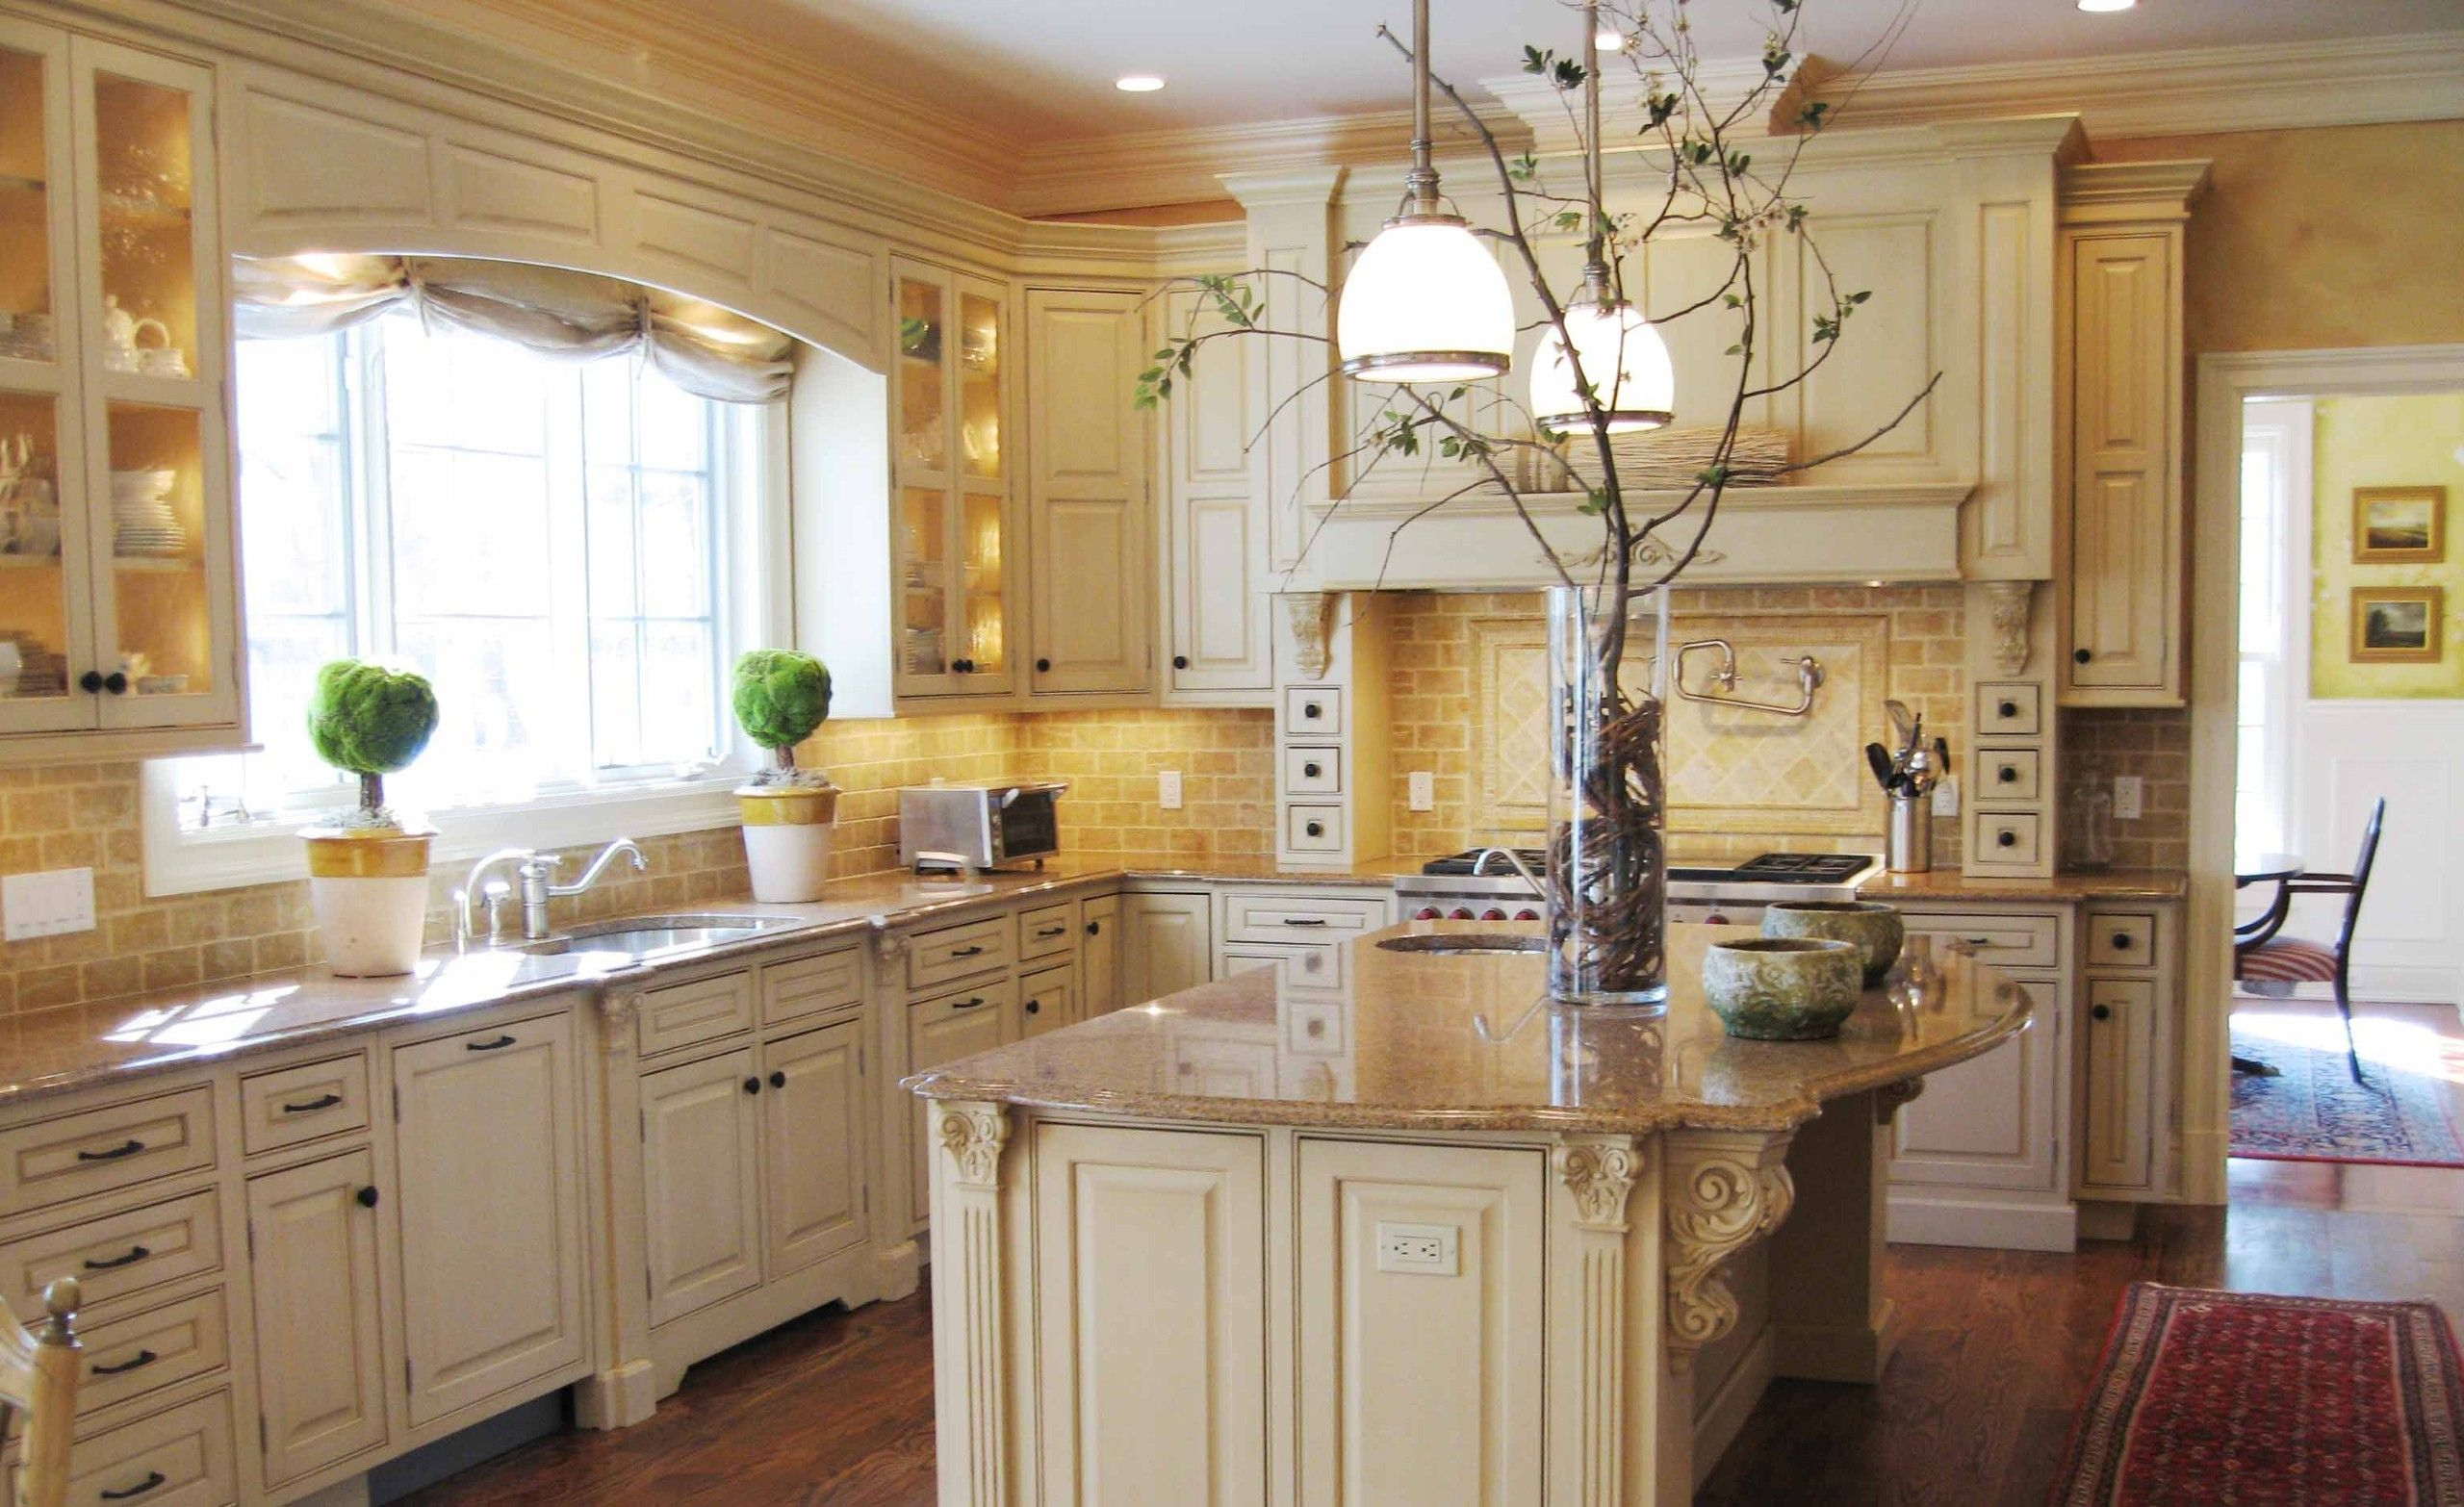 Terrific French Country Kitchen Decor With Broken White Cabinets And Island Combined With Gold Wall Paint